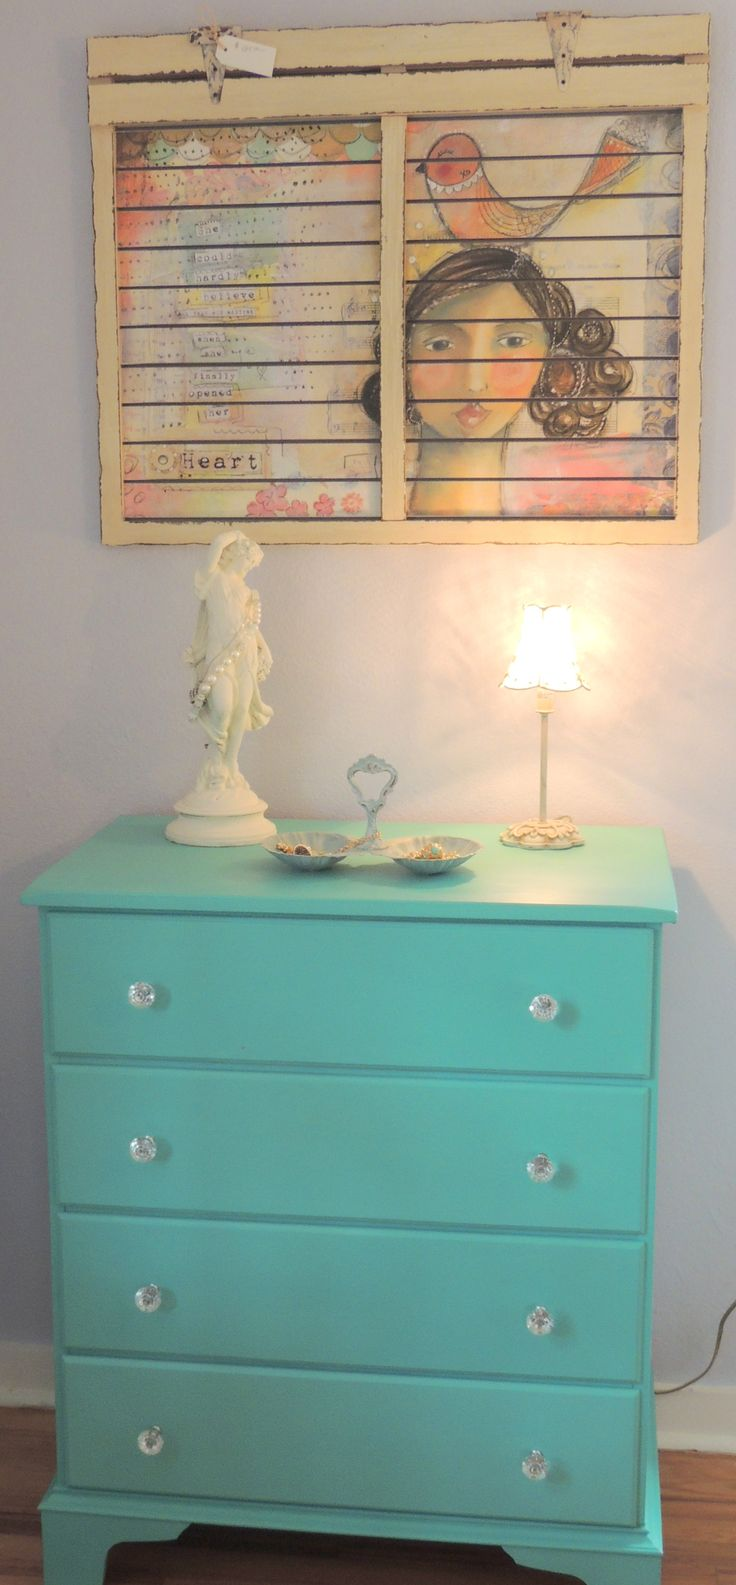 the paint modern blog painted a colors chalk imperfect furniture how meet cottage ideas alison from dresser cottages perfectly to